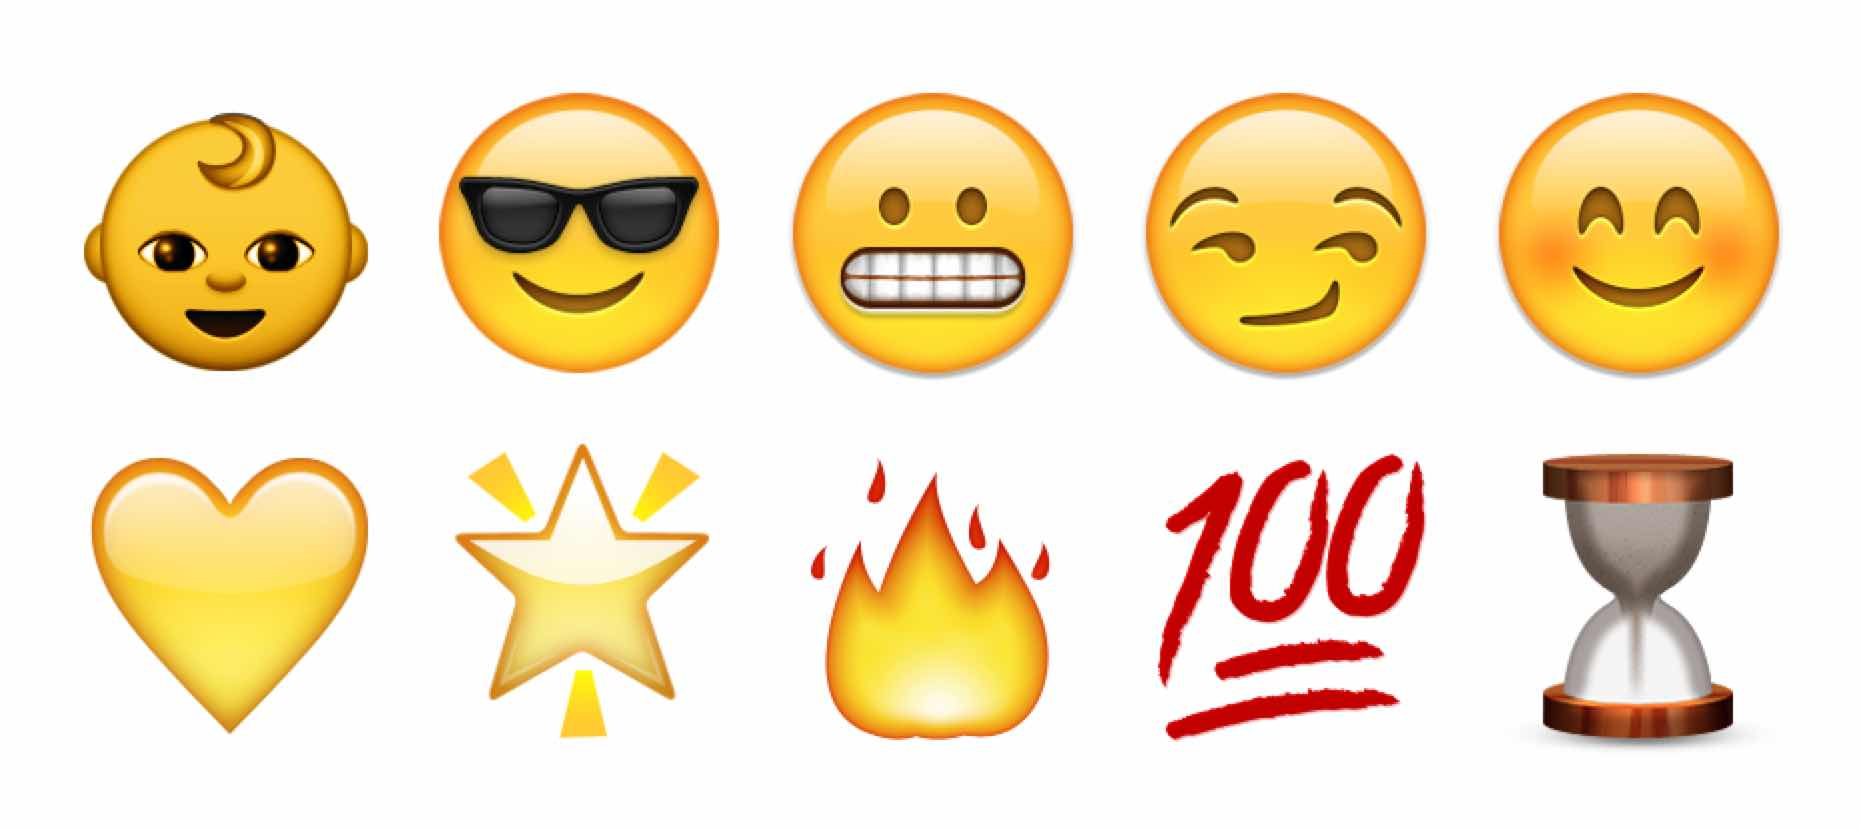 snapchat emoji meanings friend